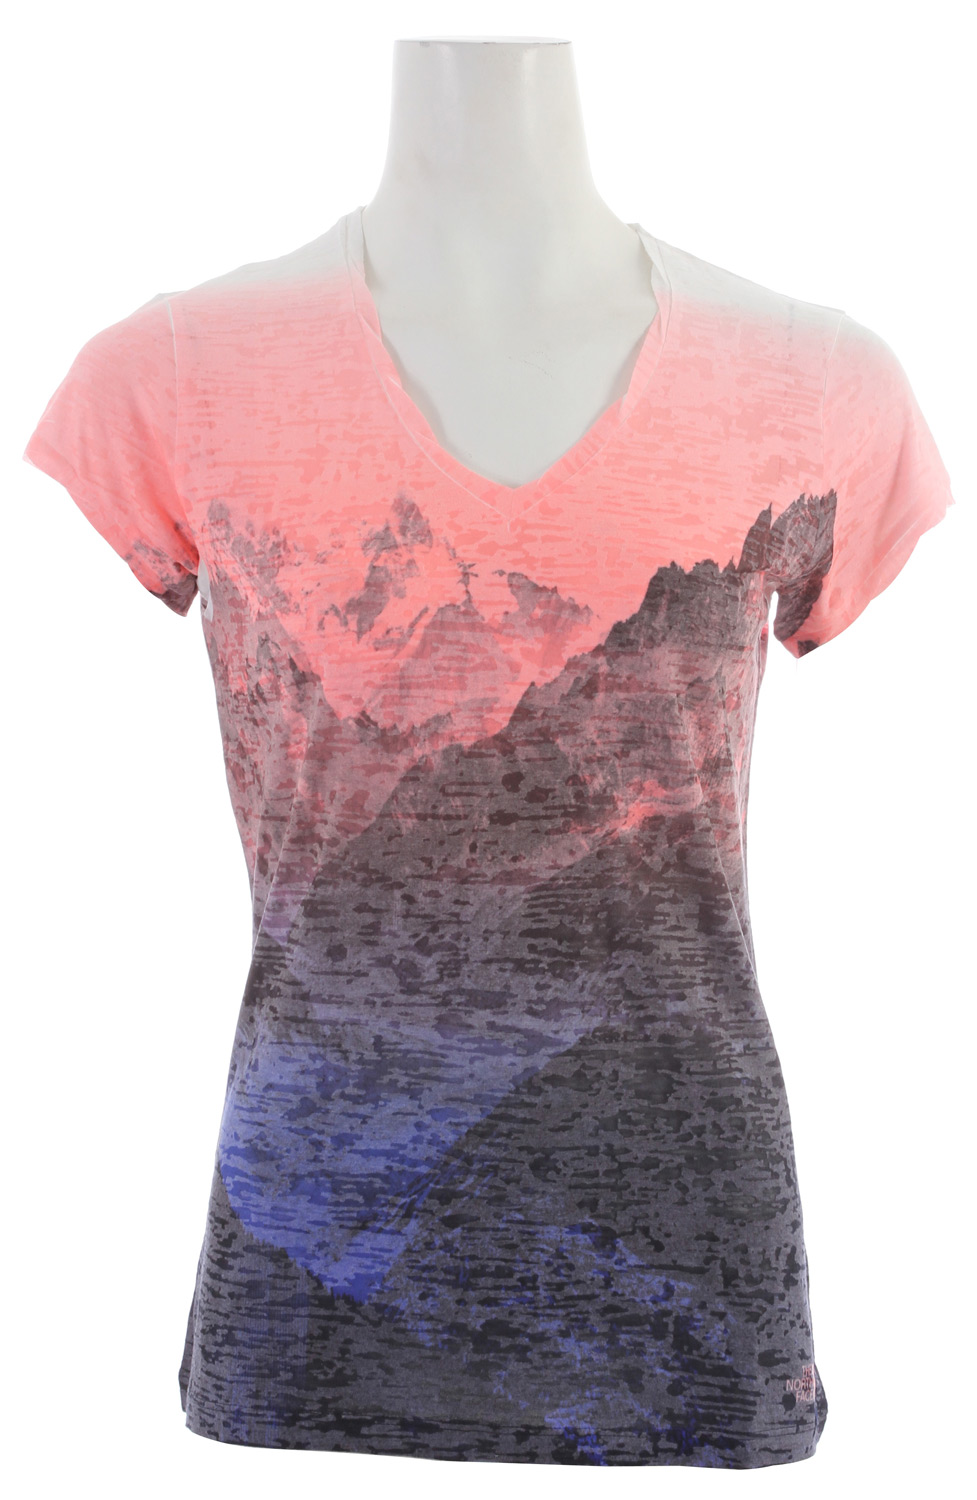 "A great lightweight layering tee with a scooped neck and hem, and an eye-catching burn-out print. Key Features of the The North Face Tadasana Burn-Out Shirt: Regular fit Photo-real sublimationsplash burn-out Twisted sleeve hem and neck trim Center back: 26"" Fabric: 145 g/m2 50% cotton, 50% burn-out jersey - $31.95"